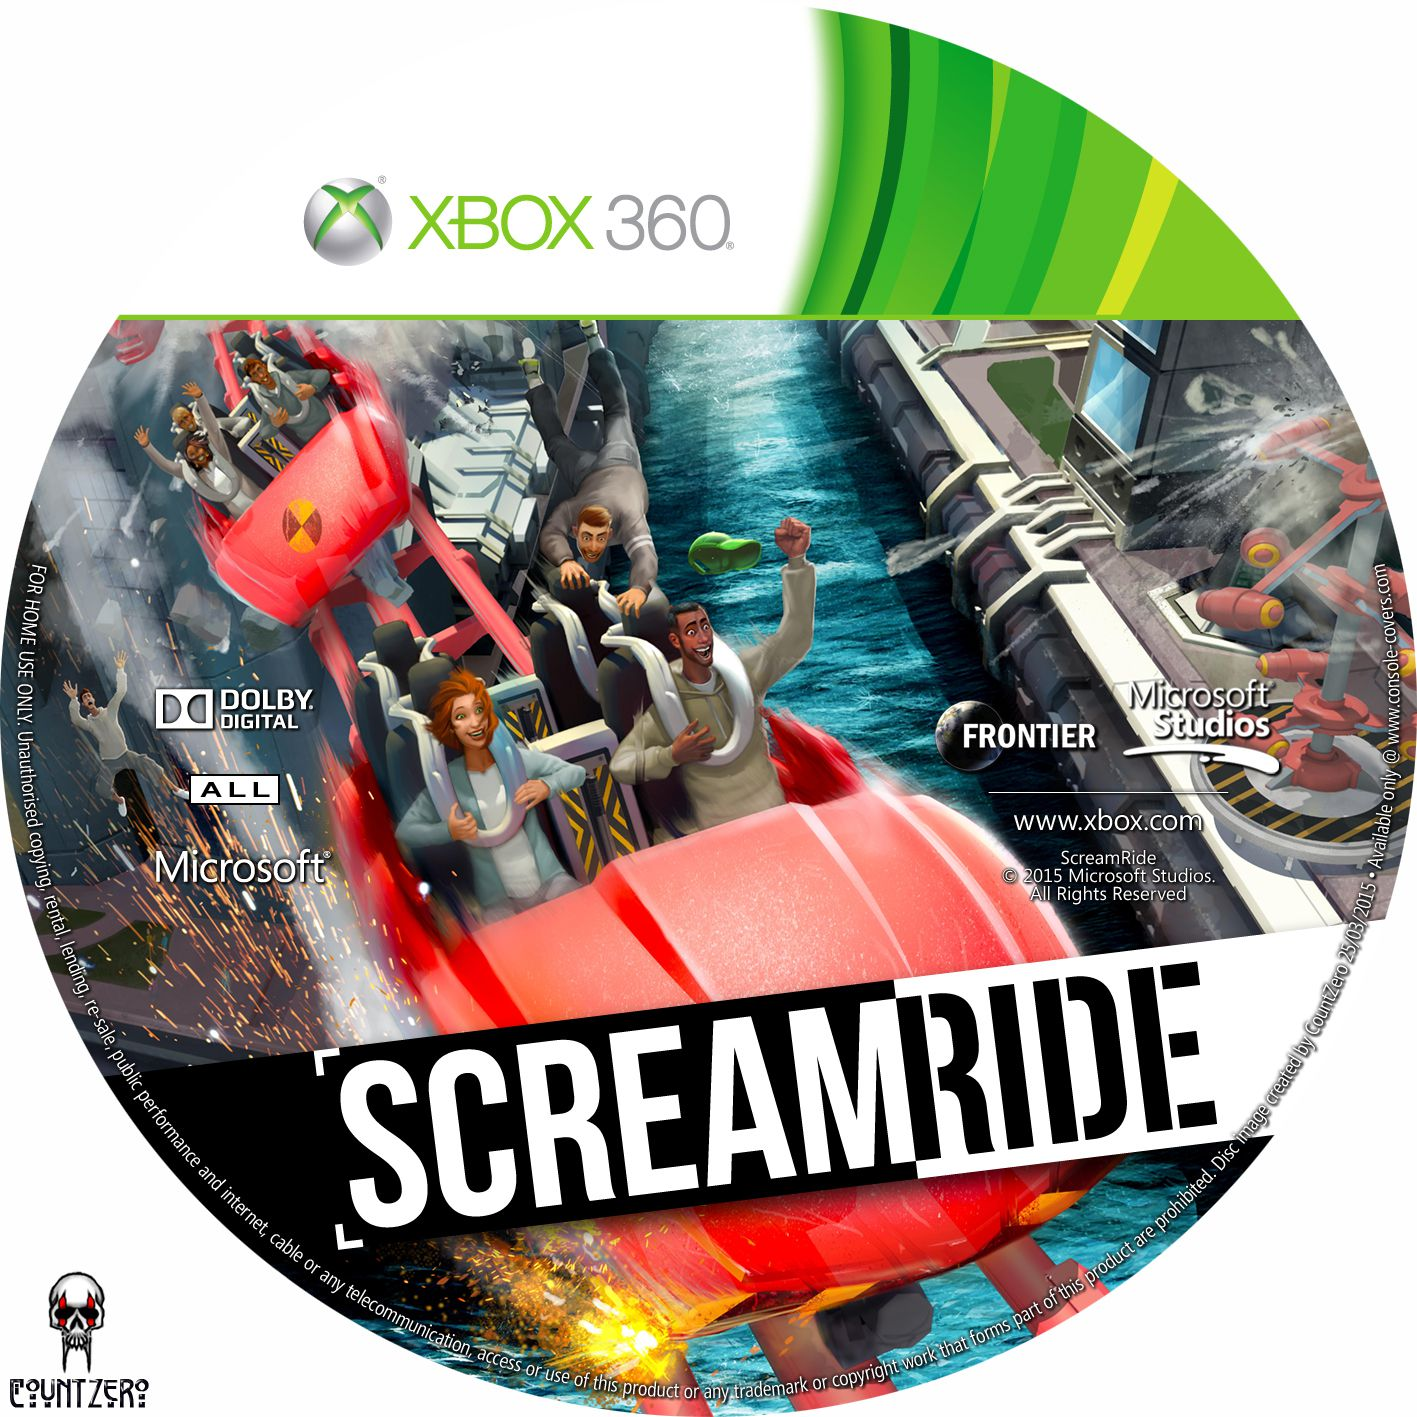 Label Scream Ride Xbox 360